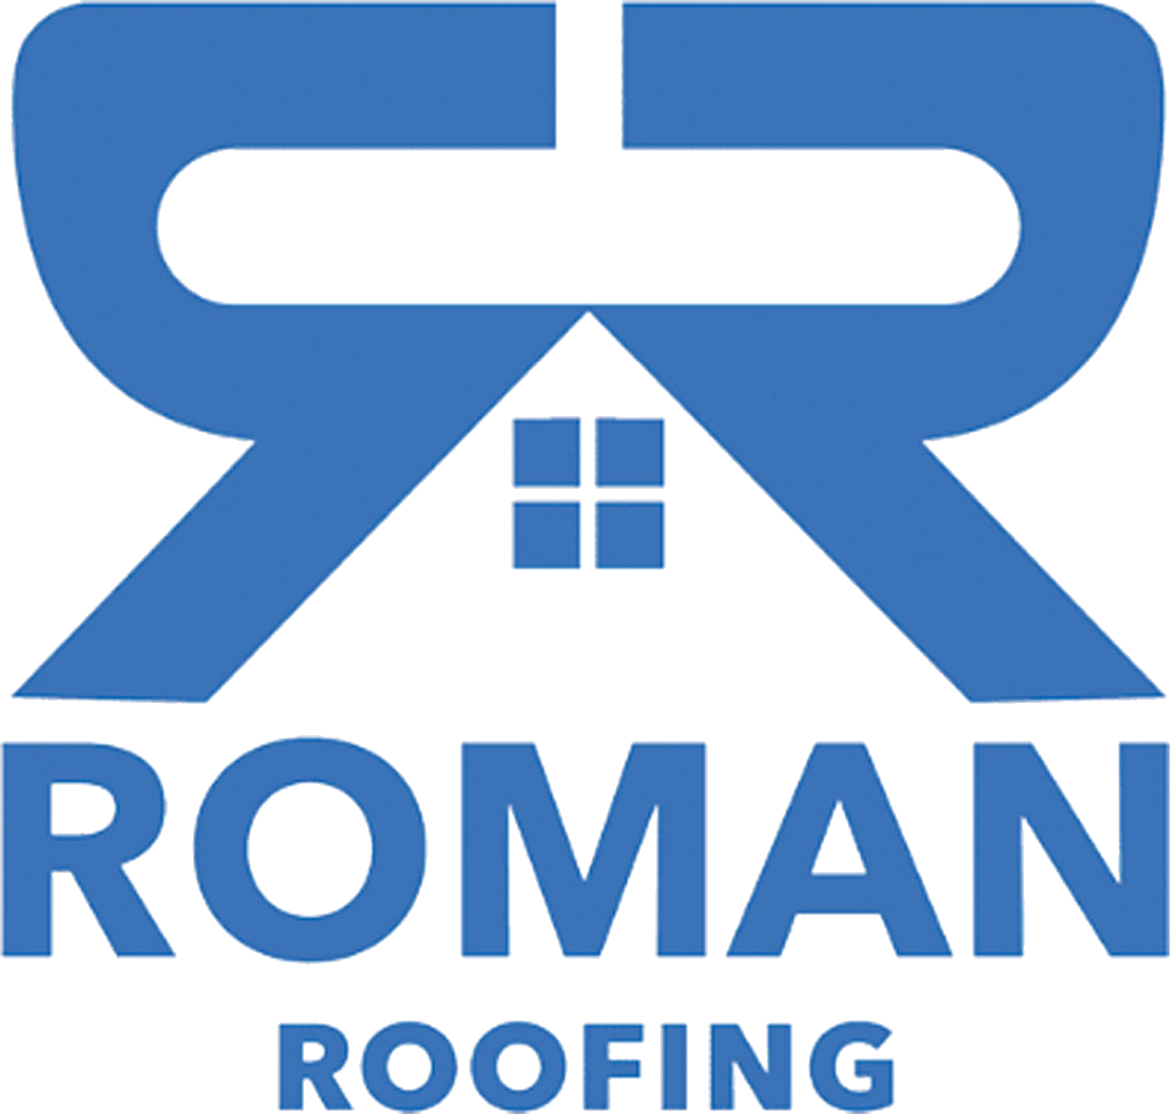 Best Roofing Contractor In Brooklyn Ny Best Roofer In Brooklyn Ny Yelp Roof Repair Roofing Contractors Roofing Roof Repair